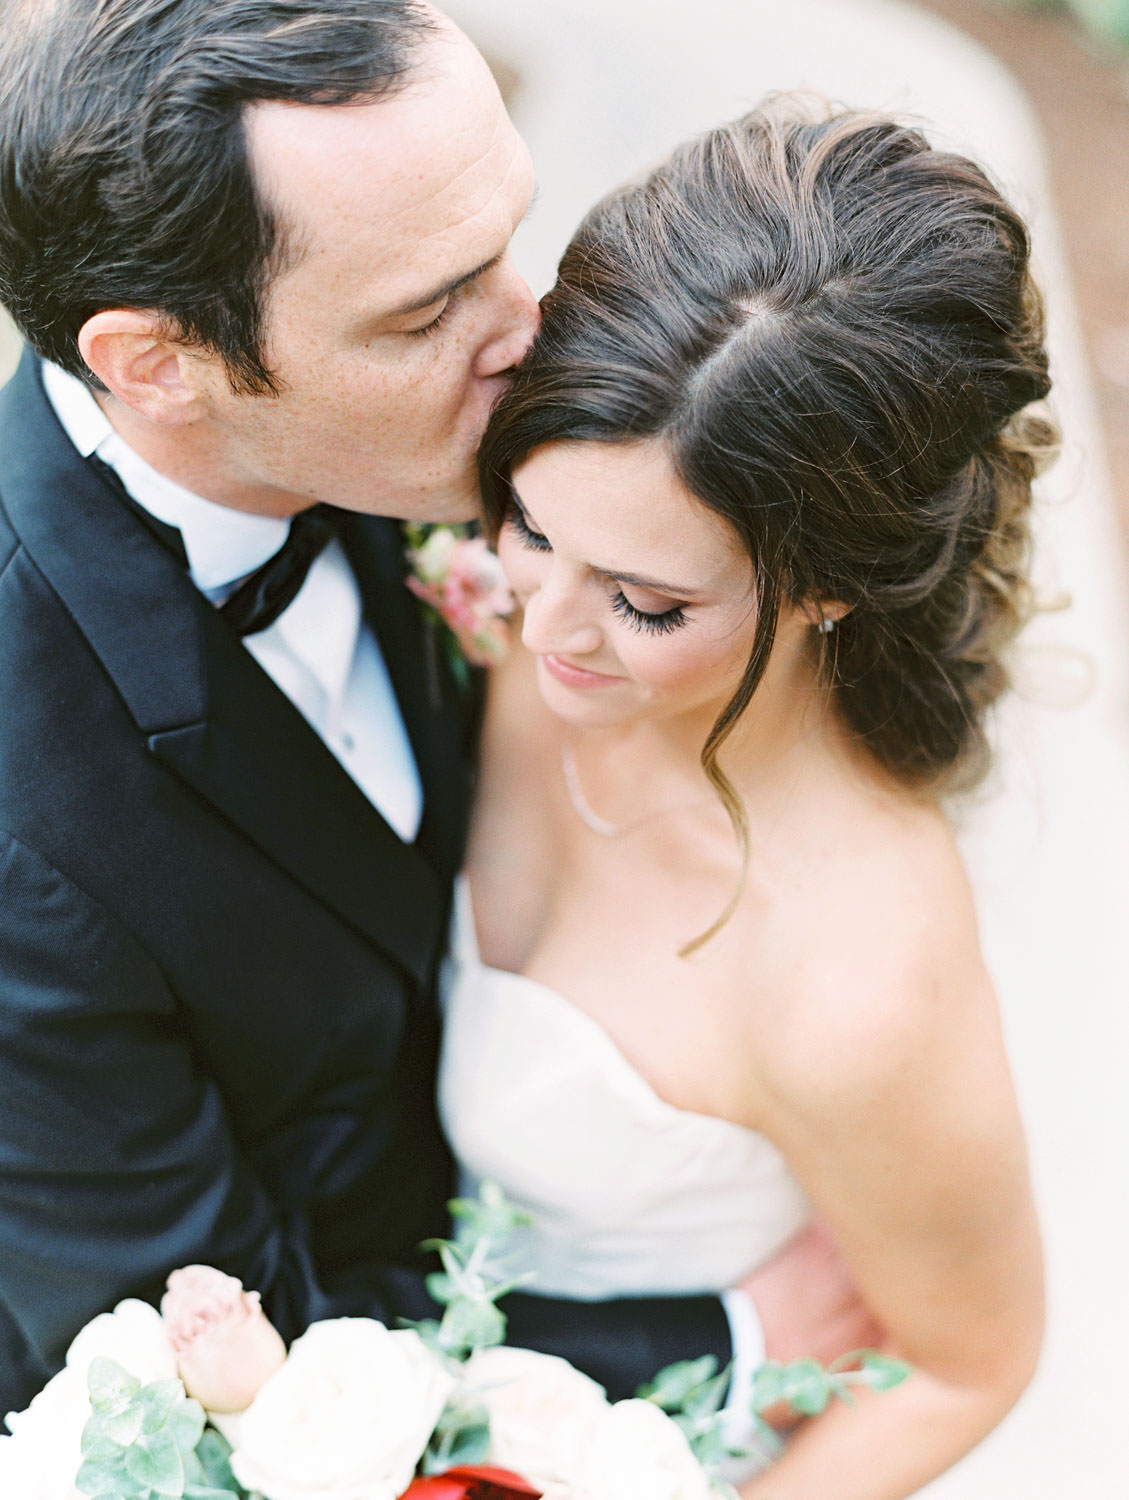 Bride in Anne Barge sweetheart gown and groom in black tux at Green Acre Campus Pointe Wedding, film photo by Cavin Elizabeth Photography